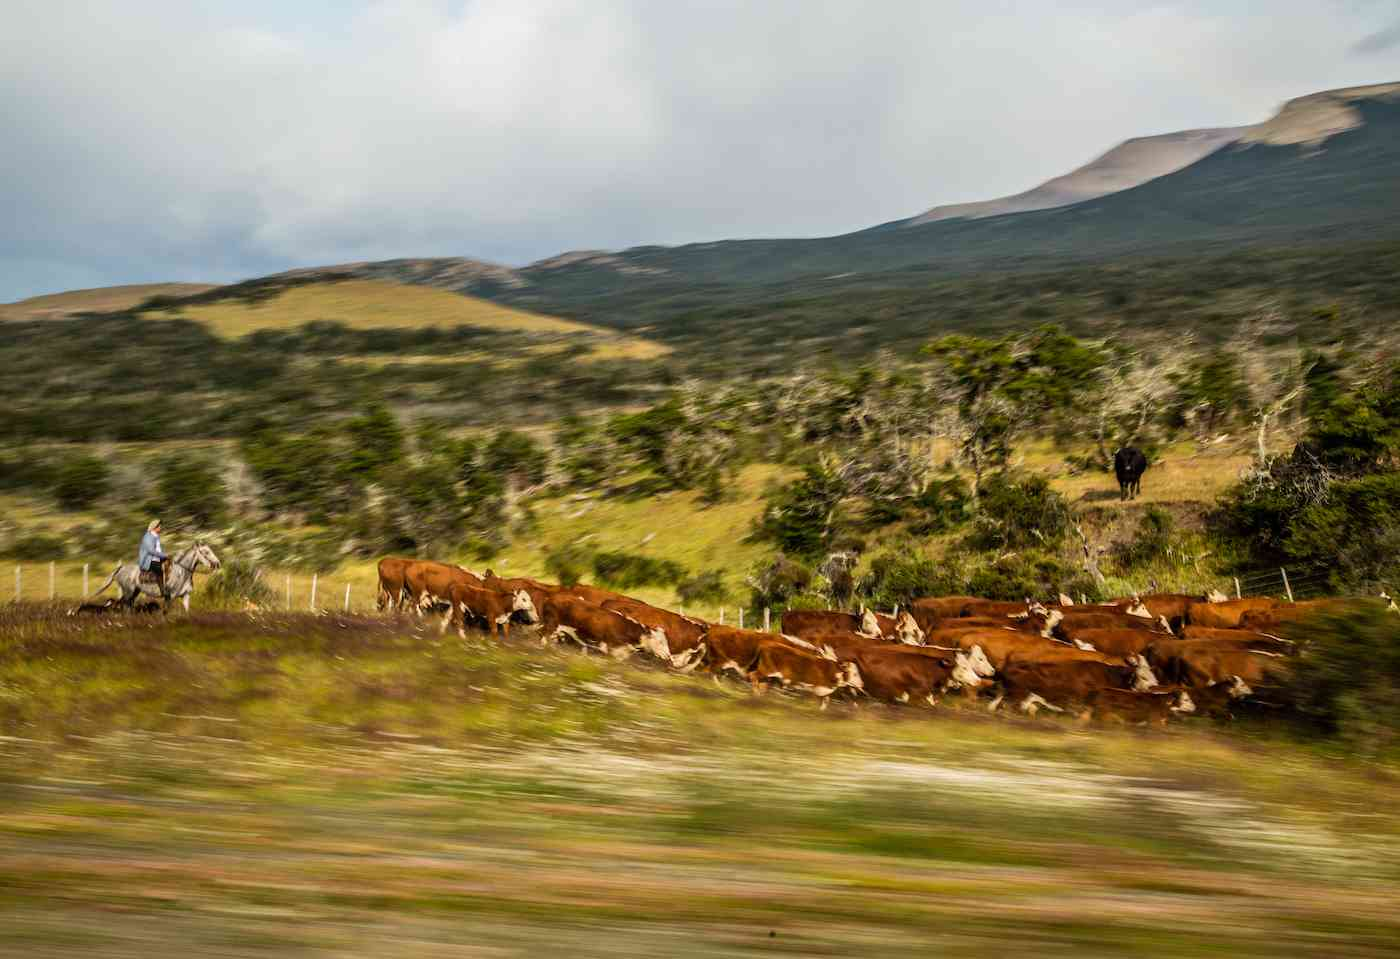 Cow herd and gaucho